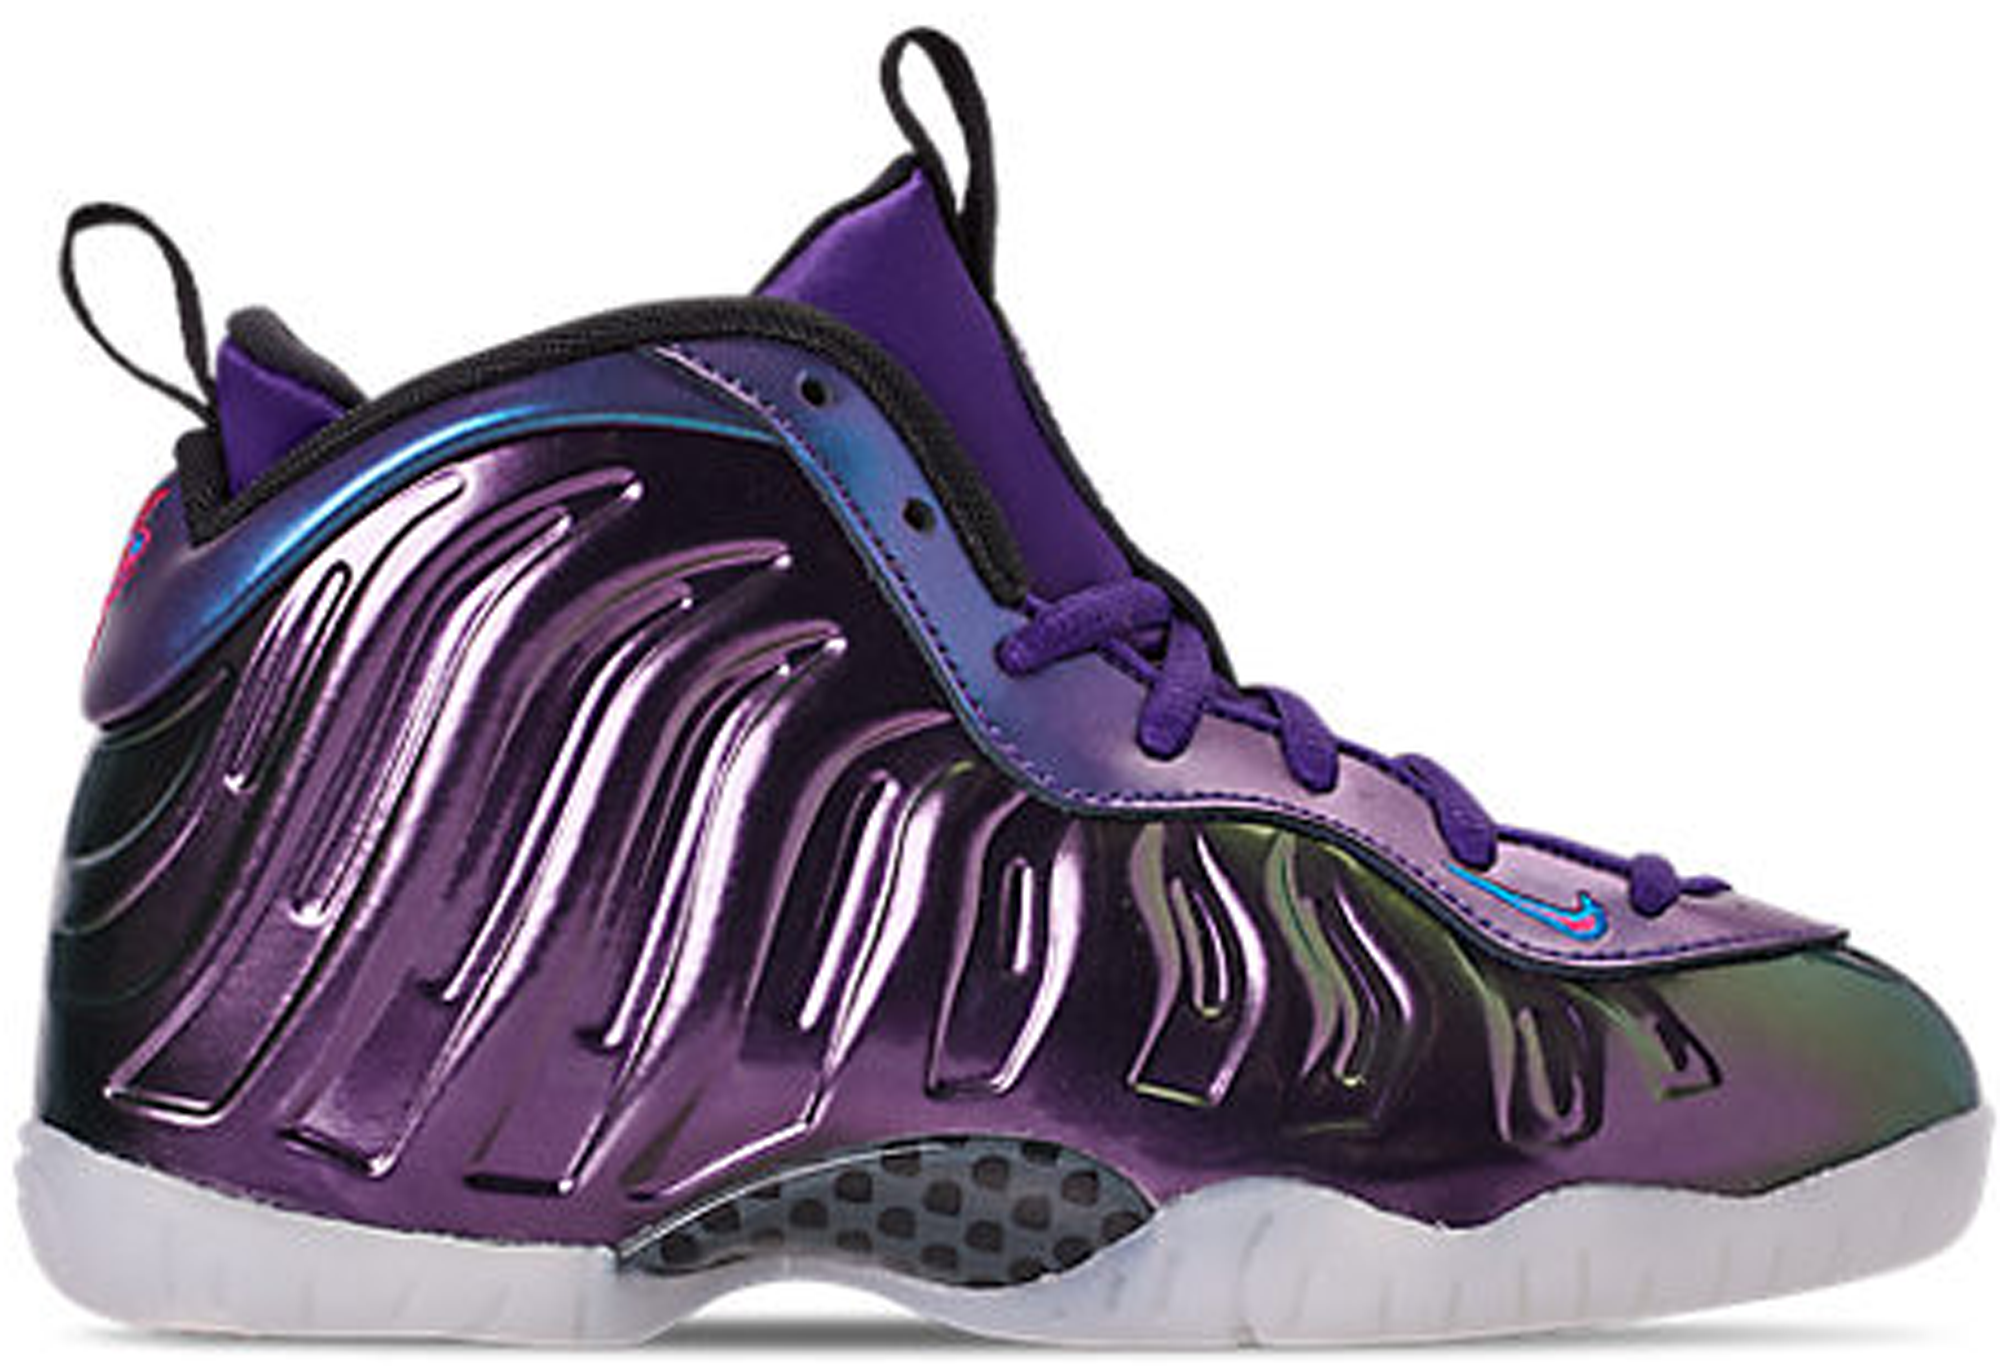 Air Foamposite One Iridescent Purple (PS)